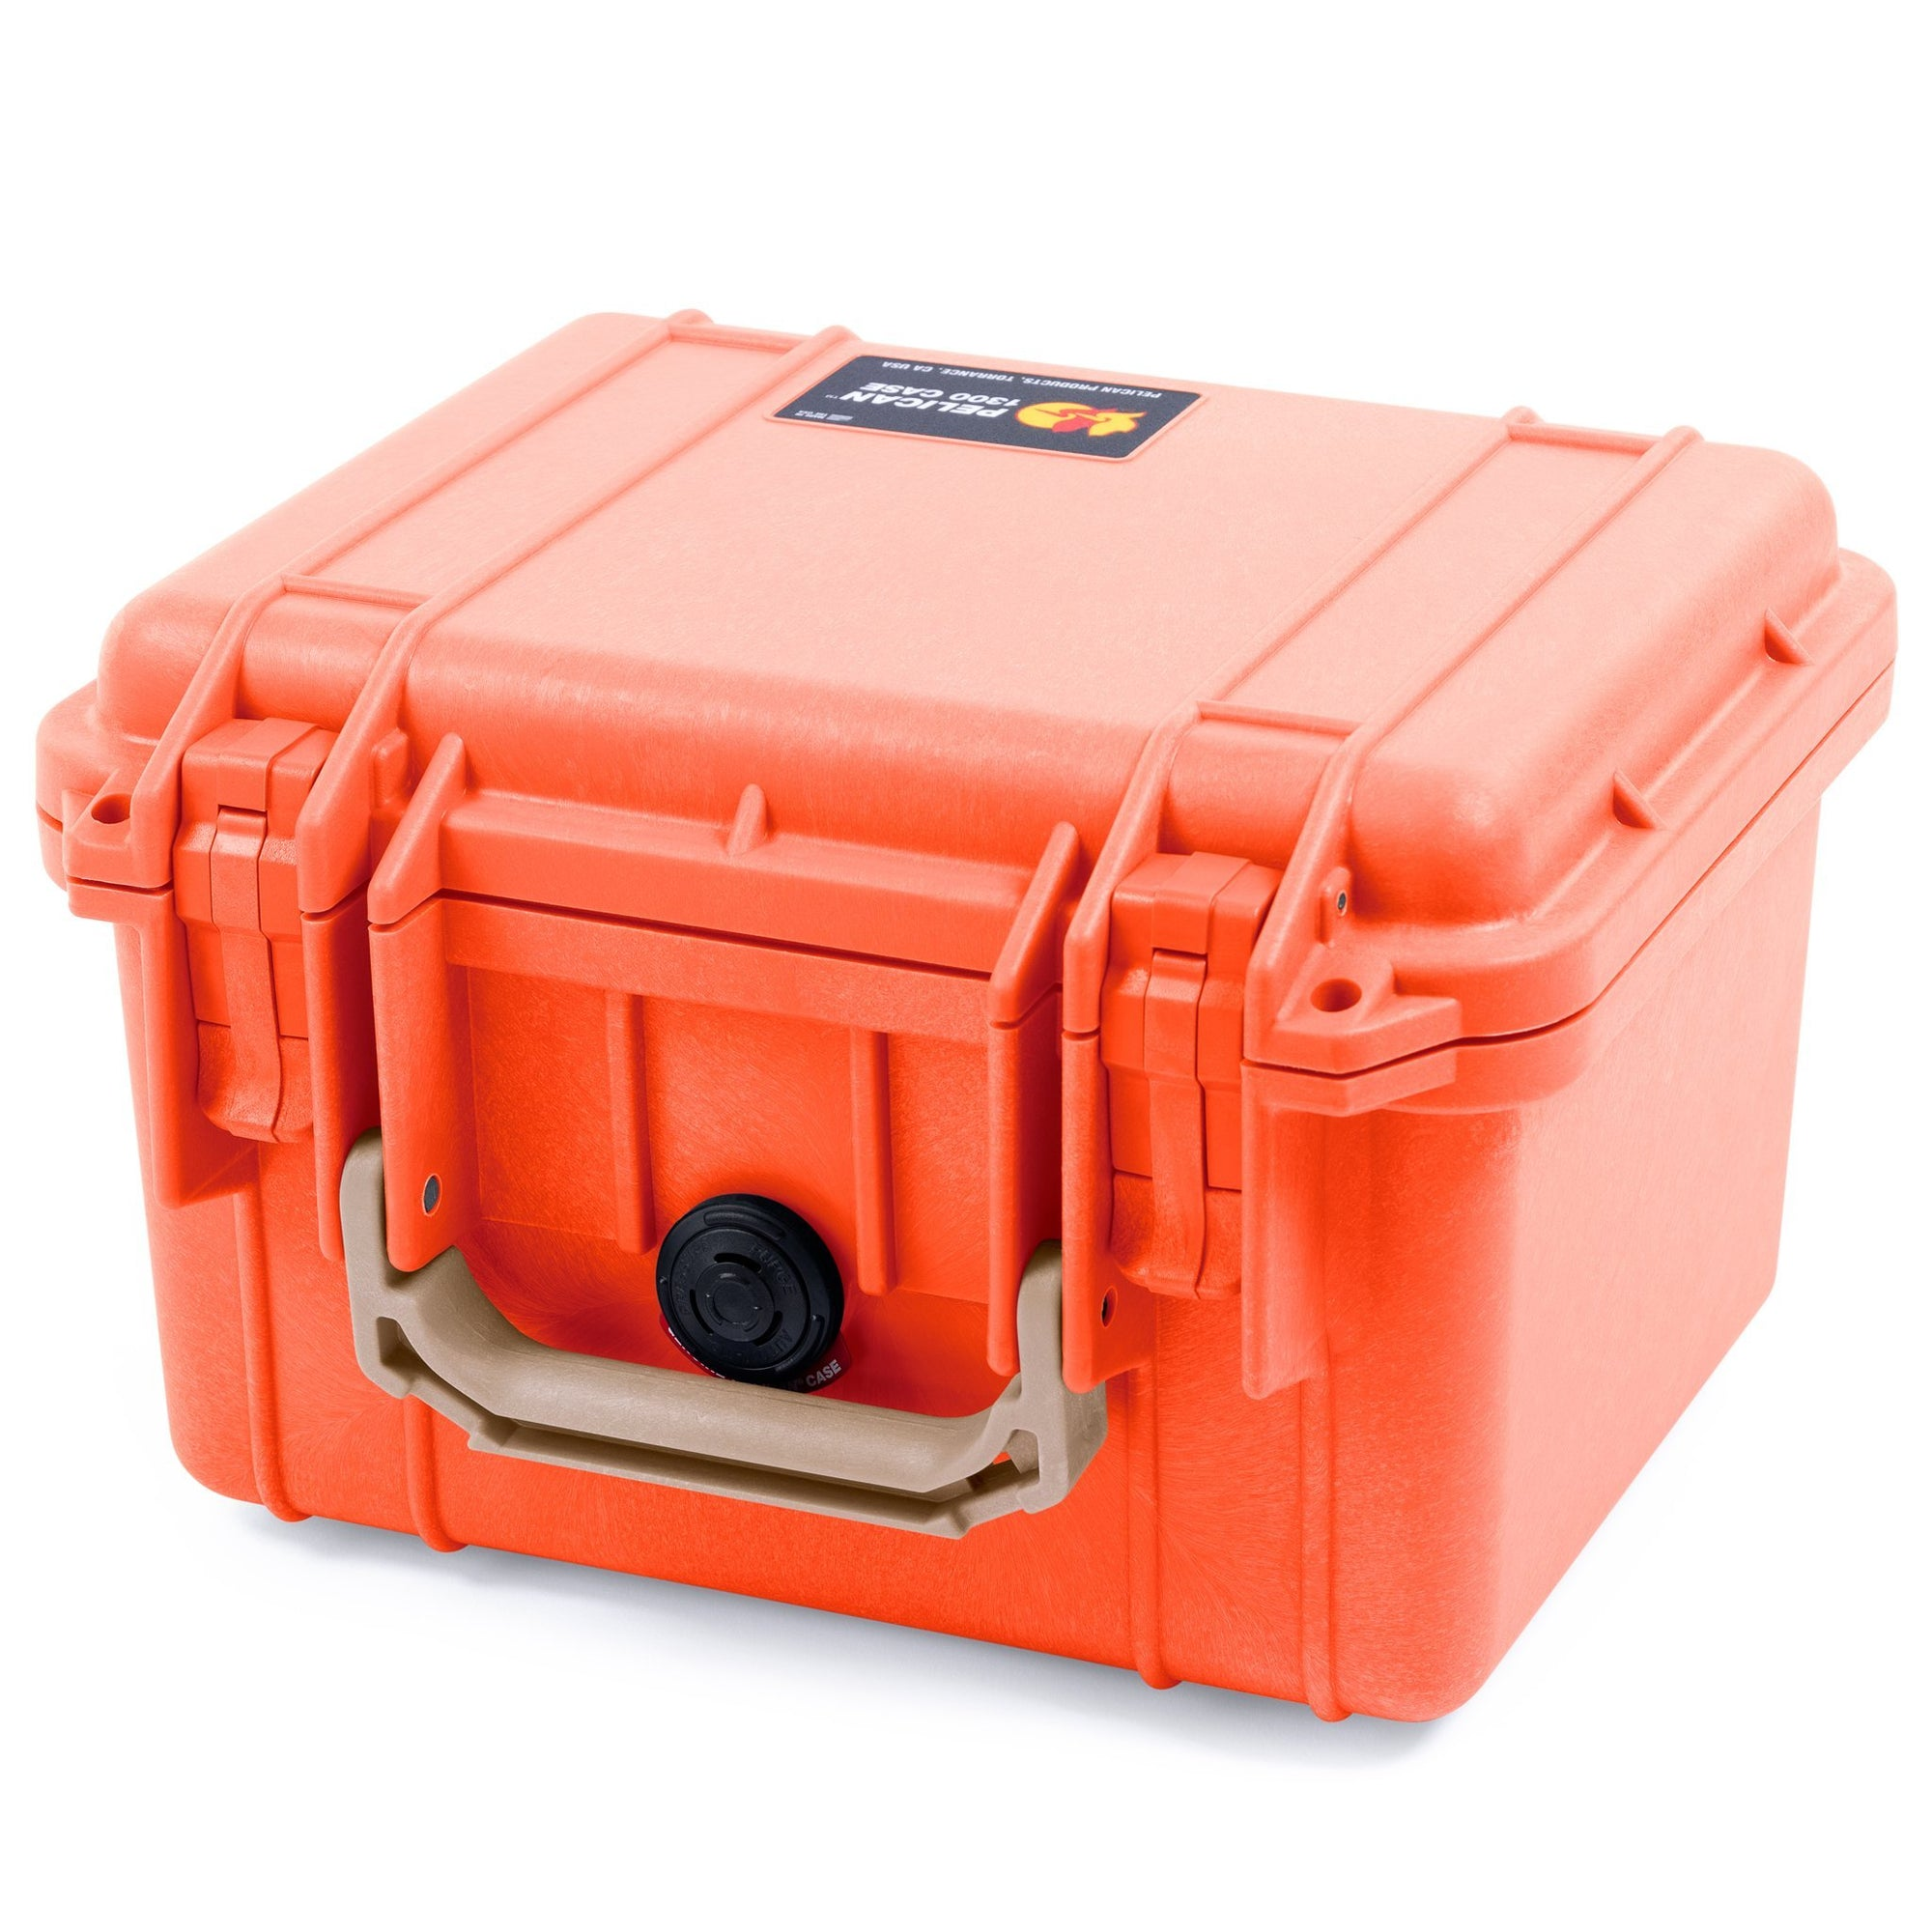 Pelican 1300 Case, Orange with Desert Tan Handle - Pelican Color Case